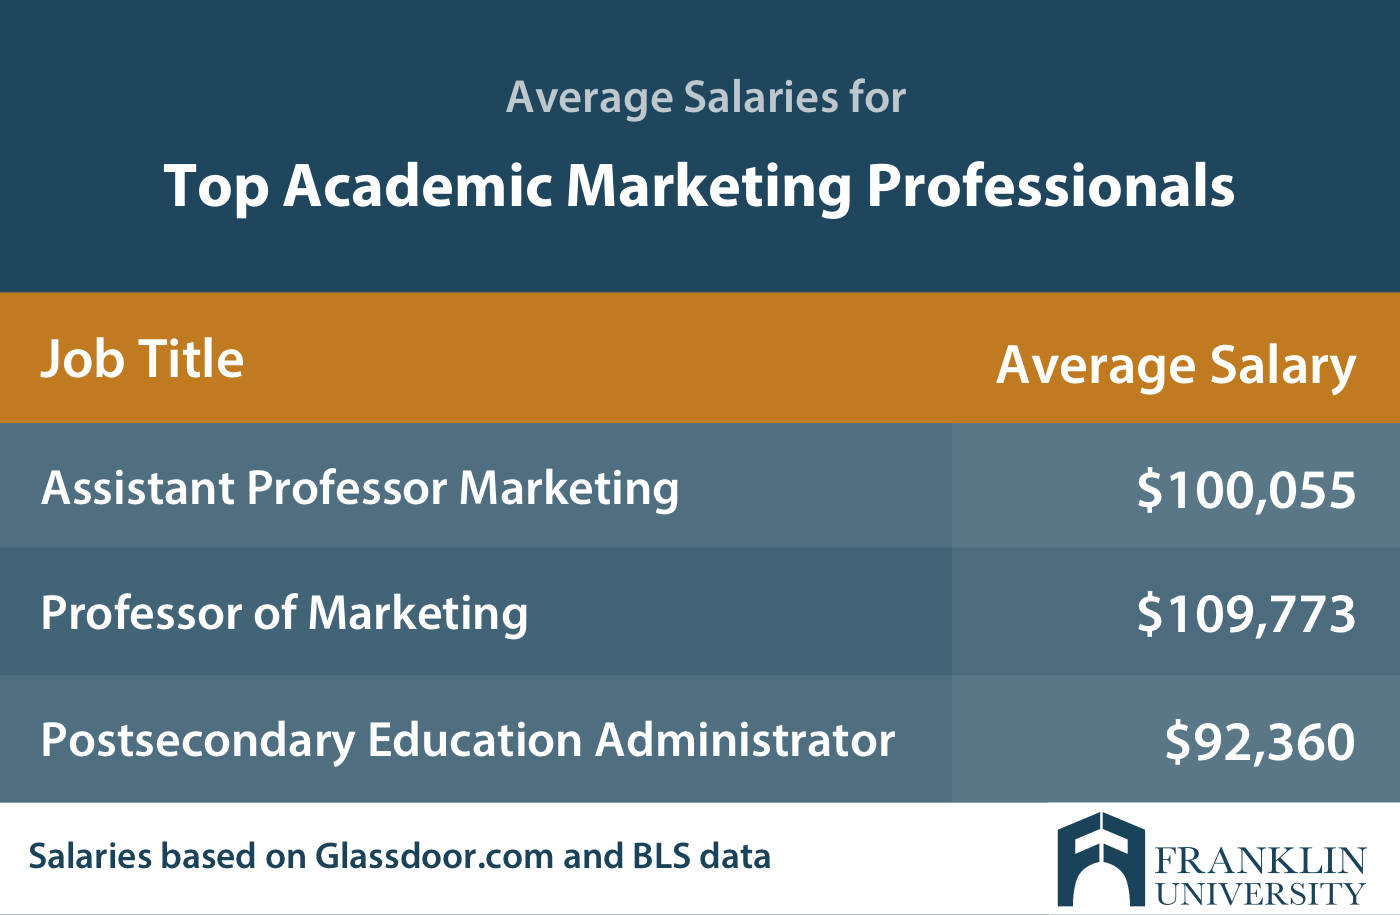 graphic describing the average salaries for top academic marketing professionals